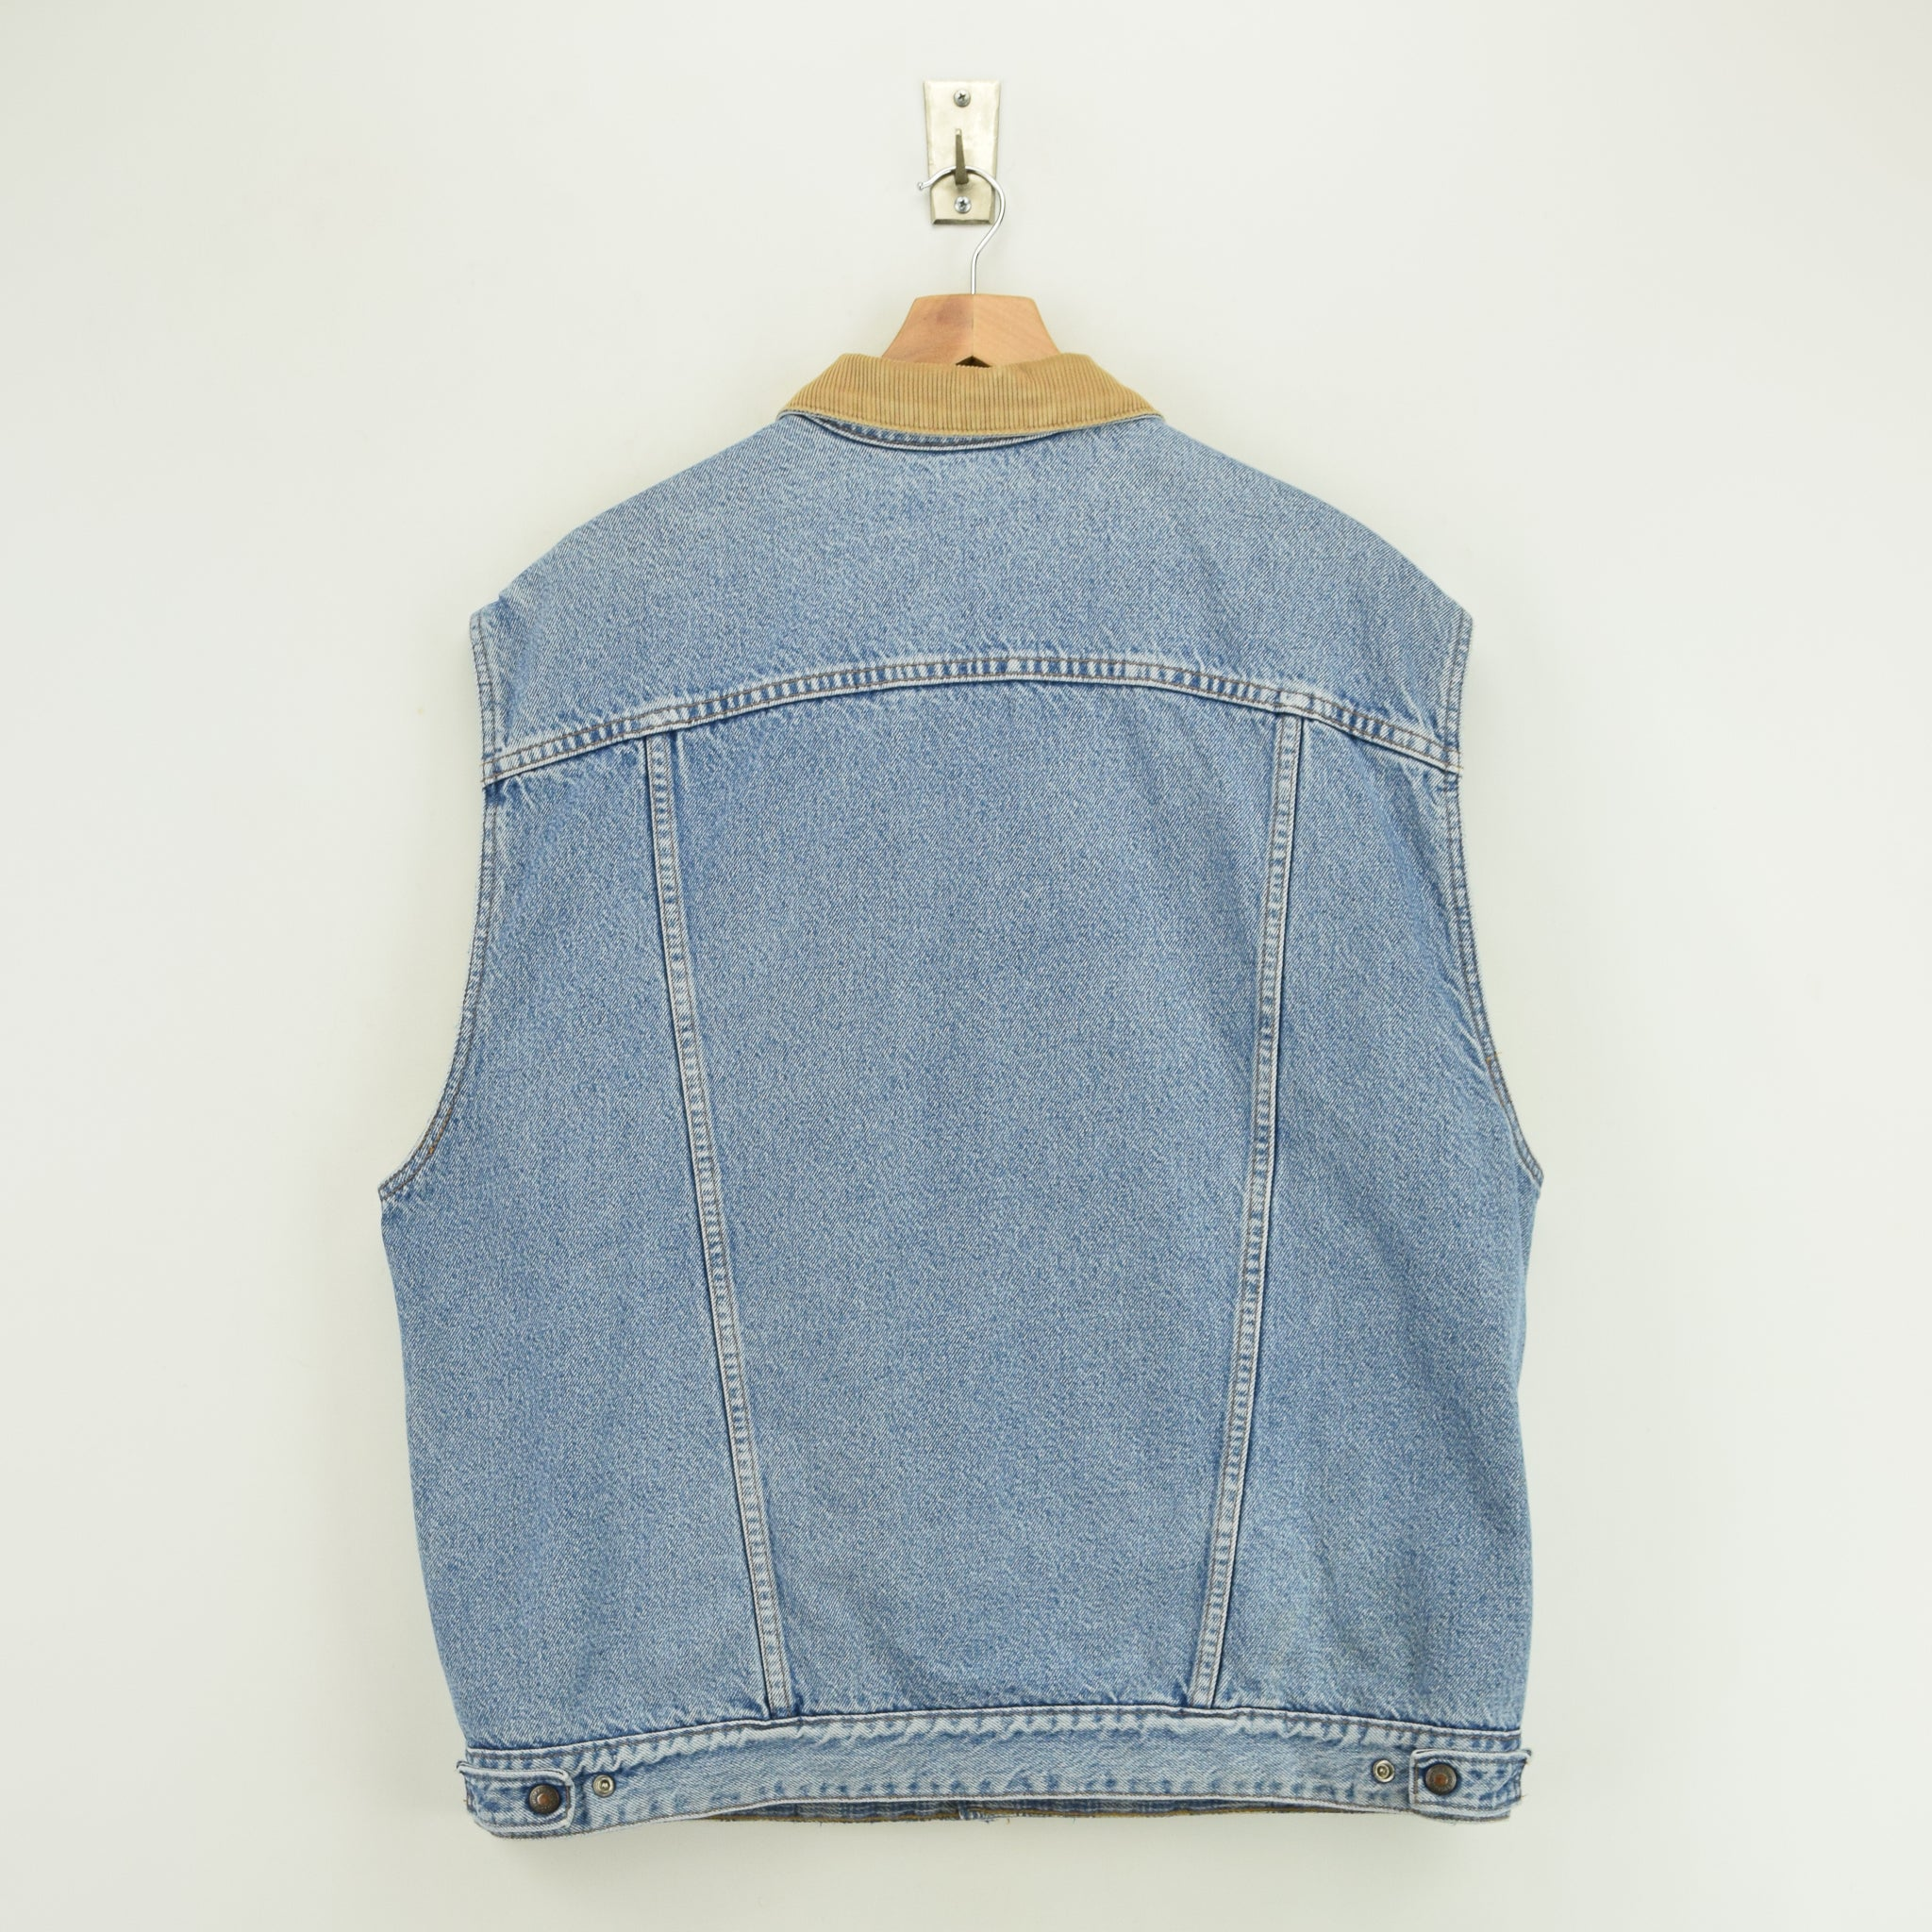 Vintage Levi Reversible Blue Denim Gilet Cord Collar Waistcoat Made in USA XL back